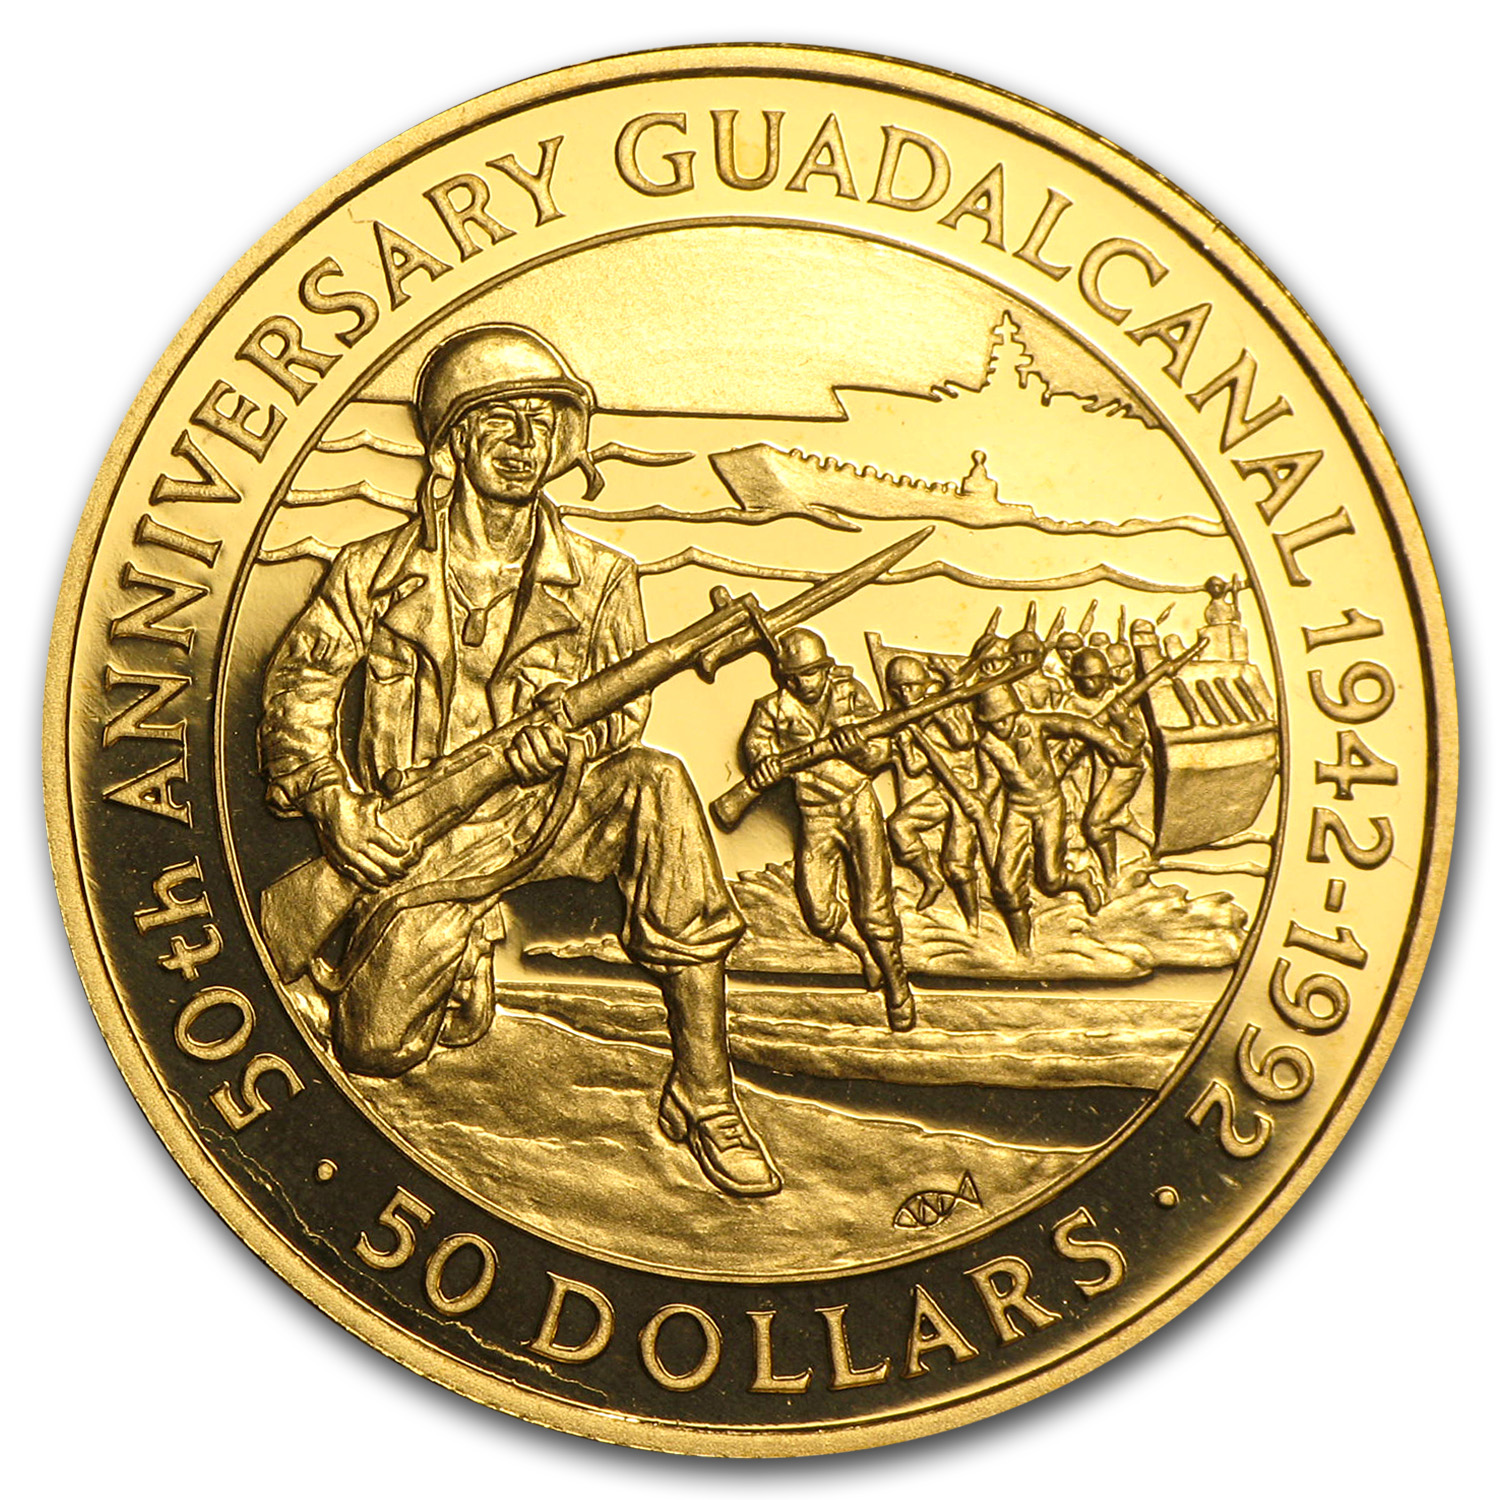 1992 Solomon Islands Proof Gold $50 Battle of Guadalcanal